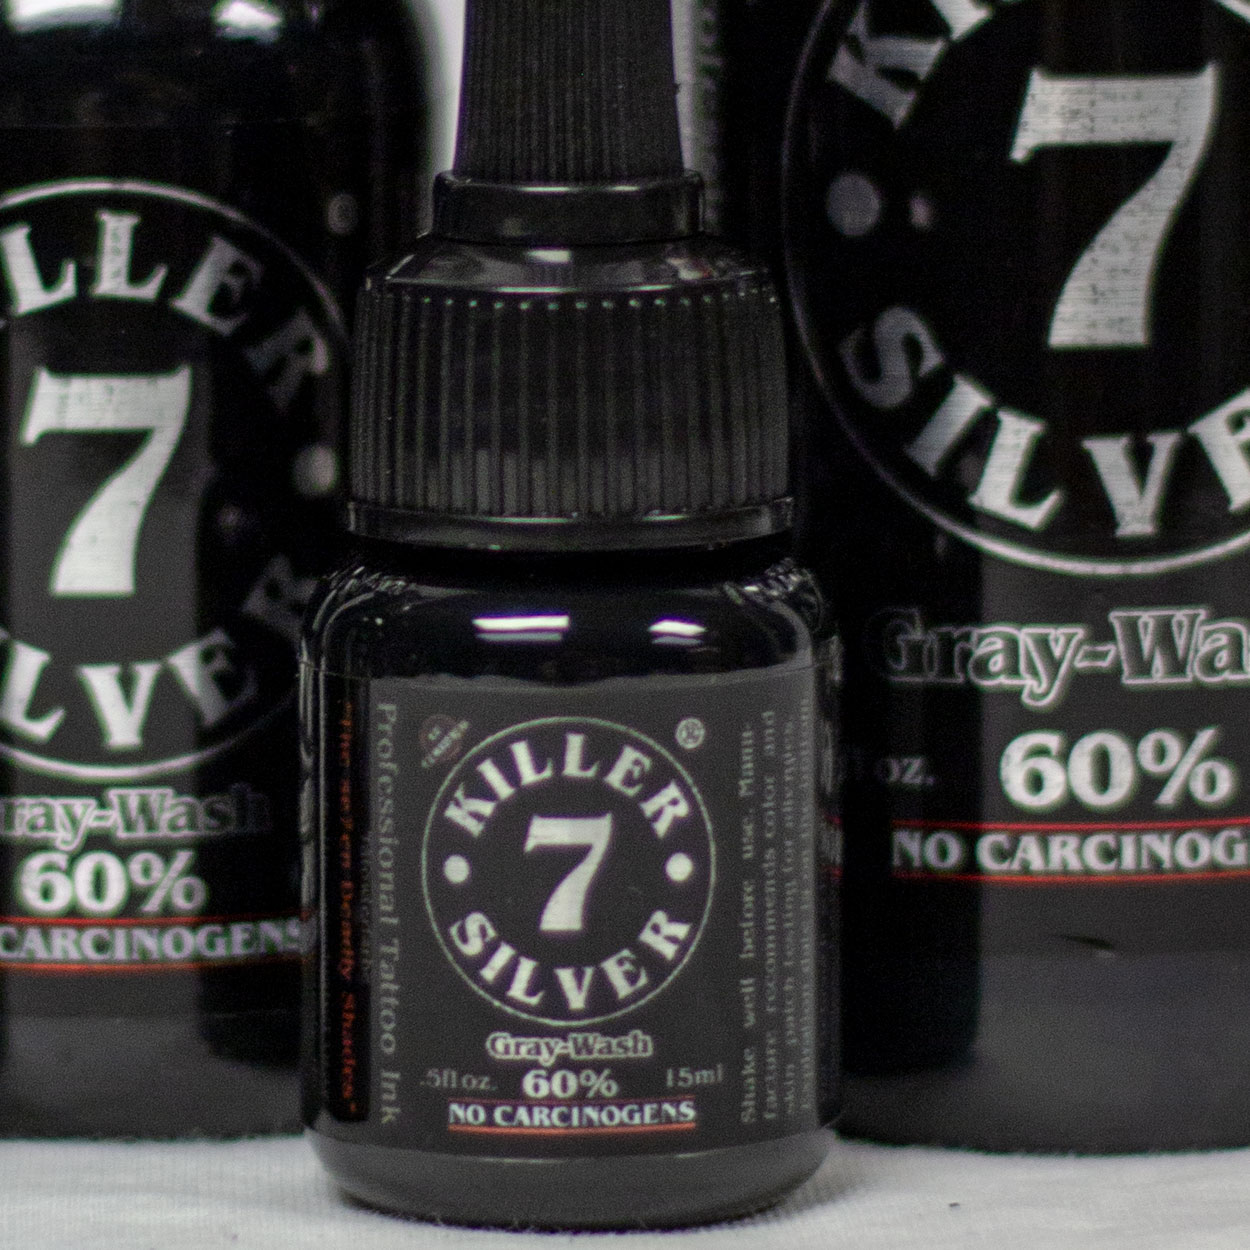 Killer Silver 60%-Gray-Wash-Professional Tattoo Ink-Deep Midnight Gray